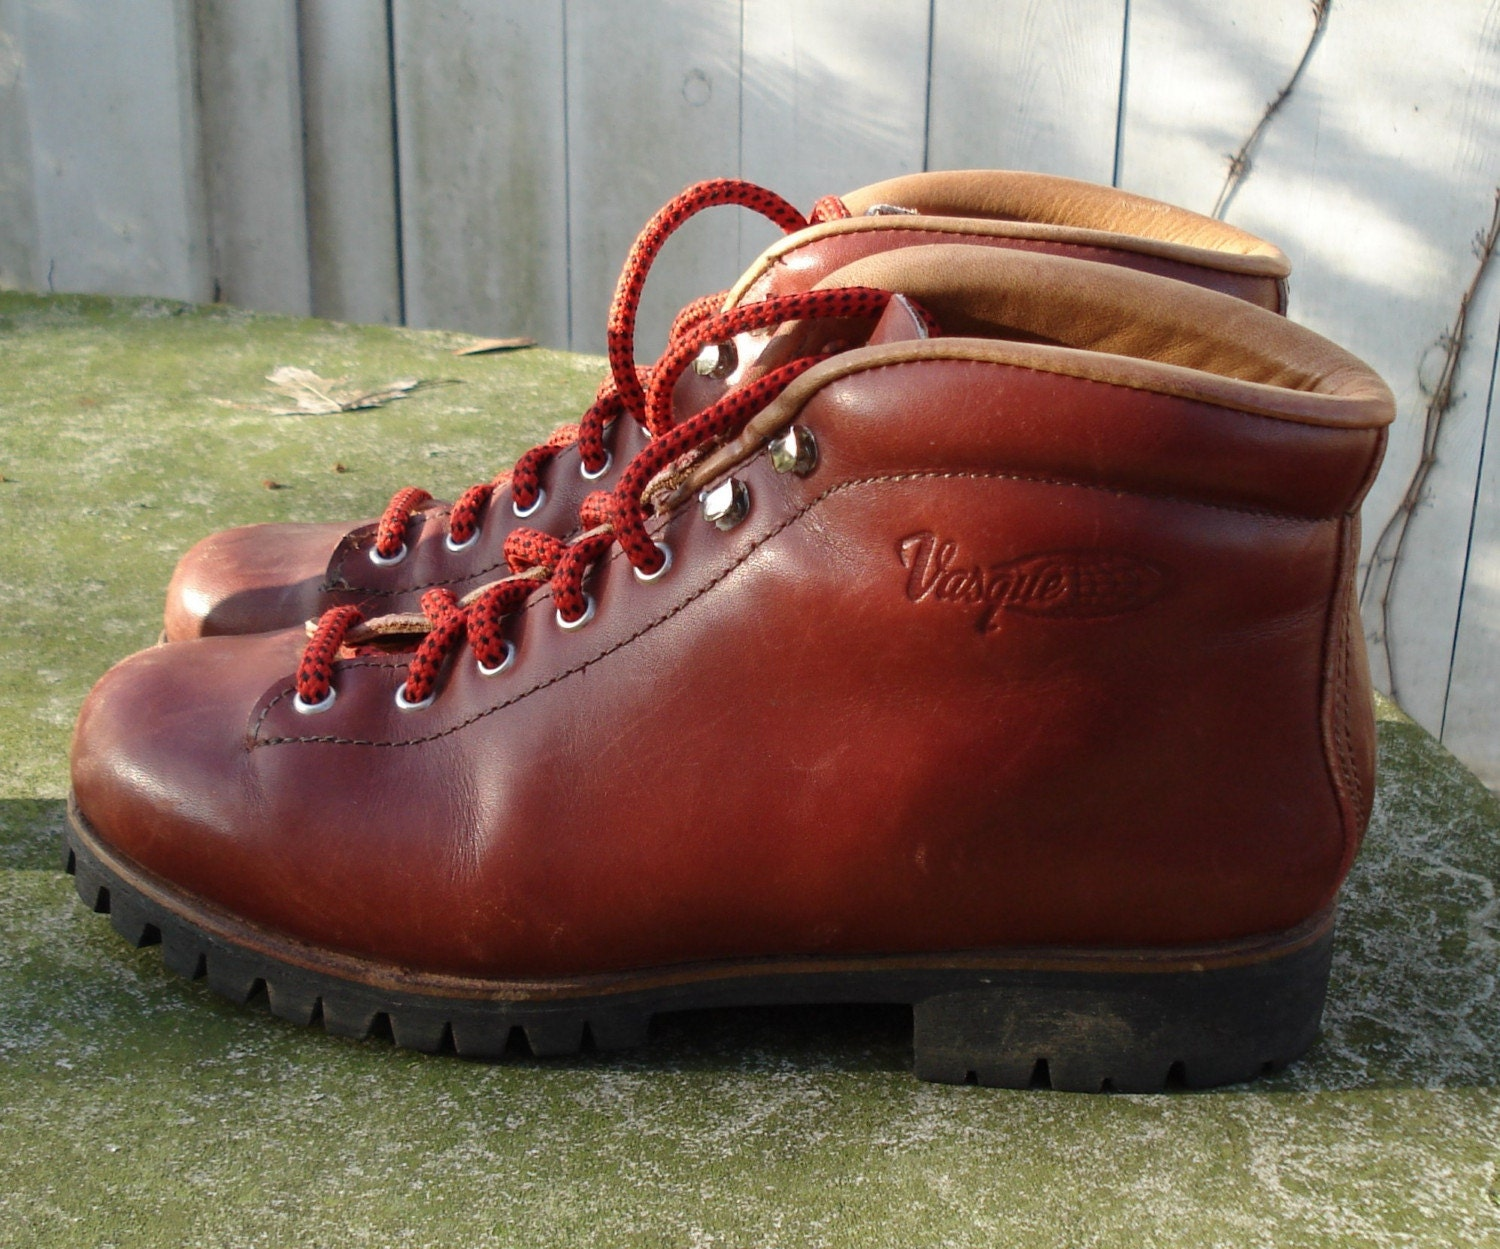 Vintage Vasque Leather Hiking Boots Made In Italy Gorgeous